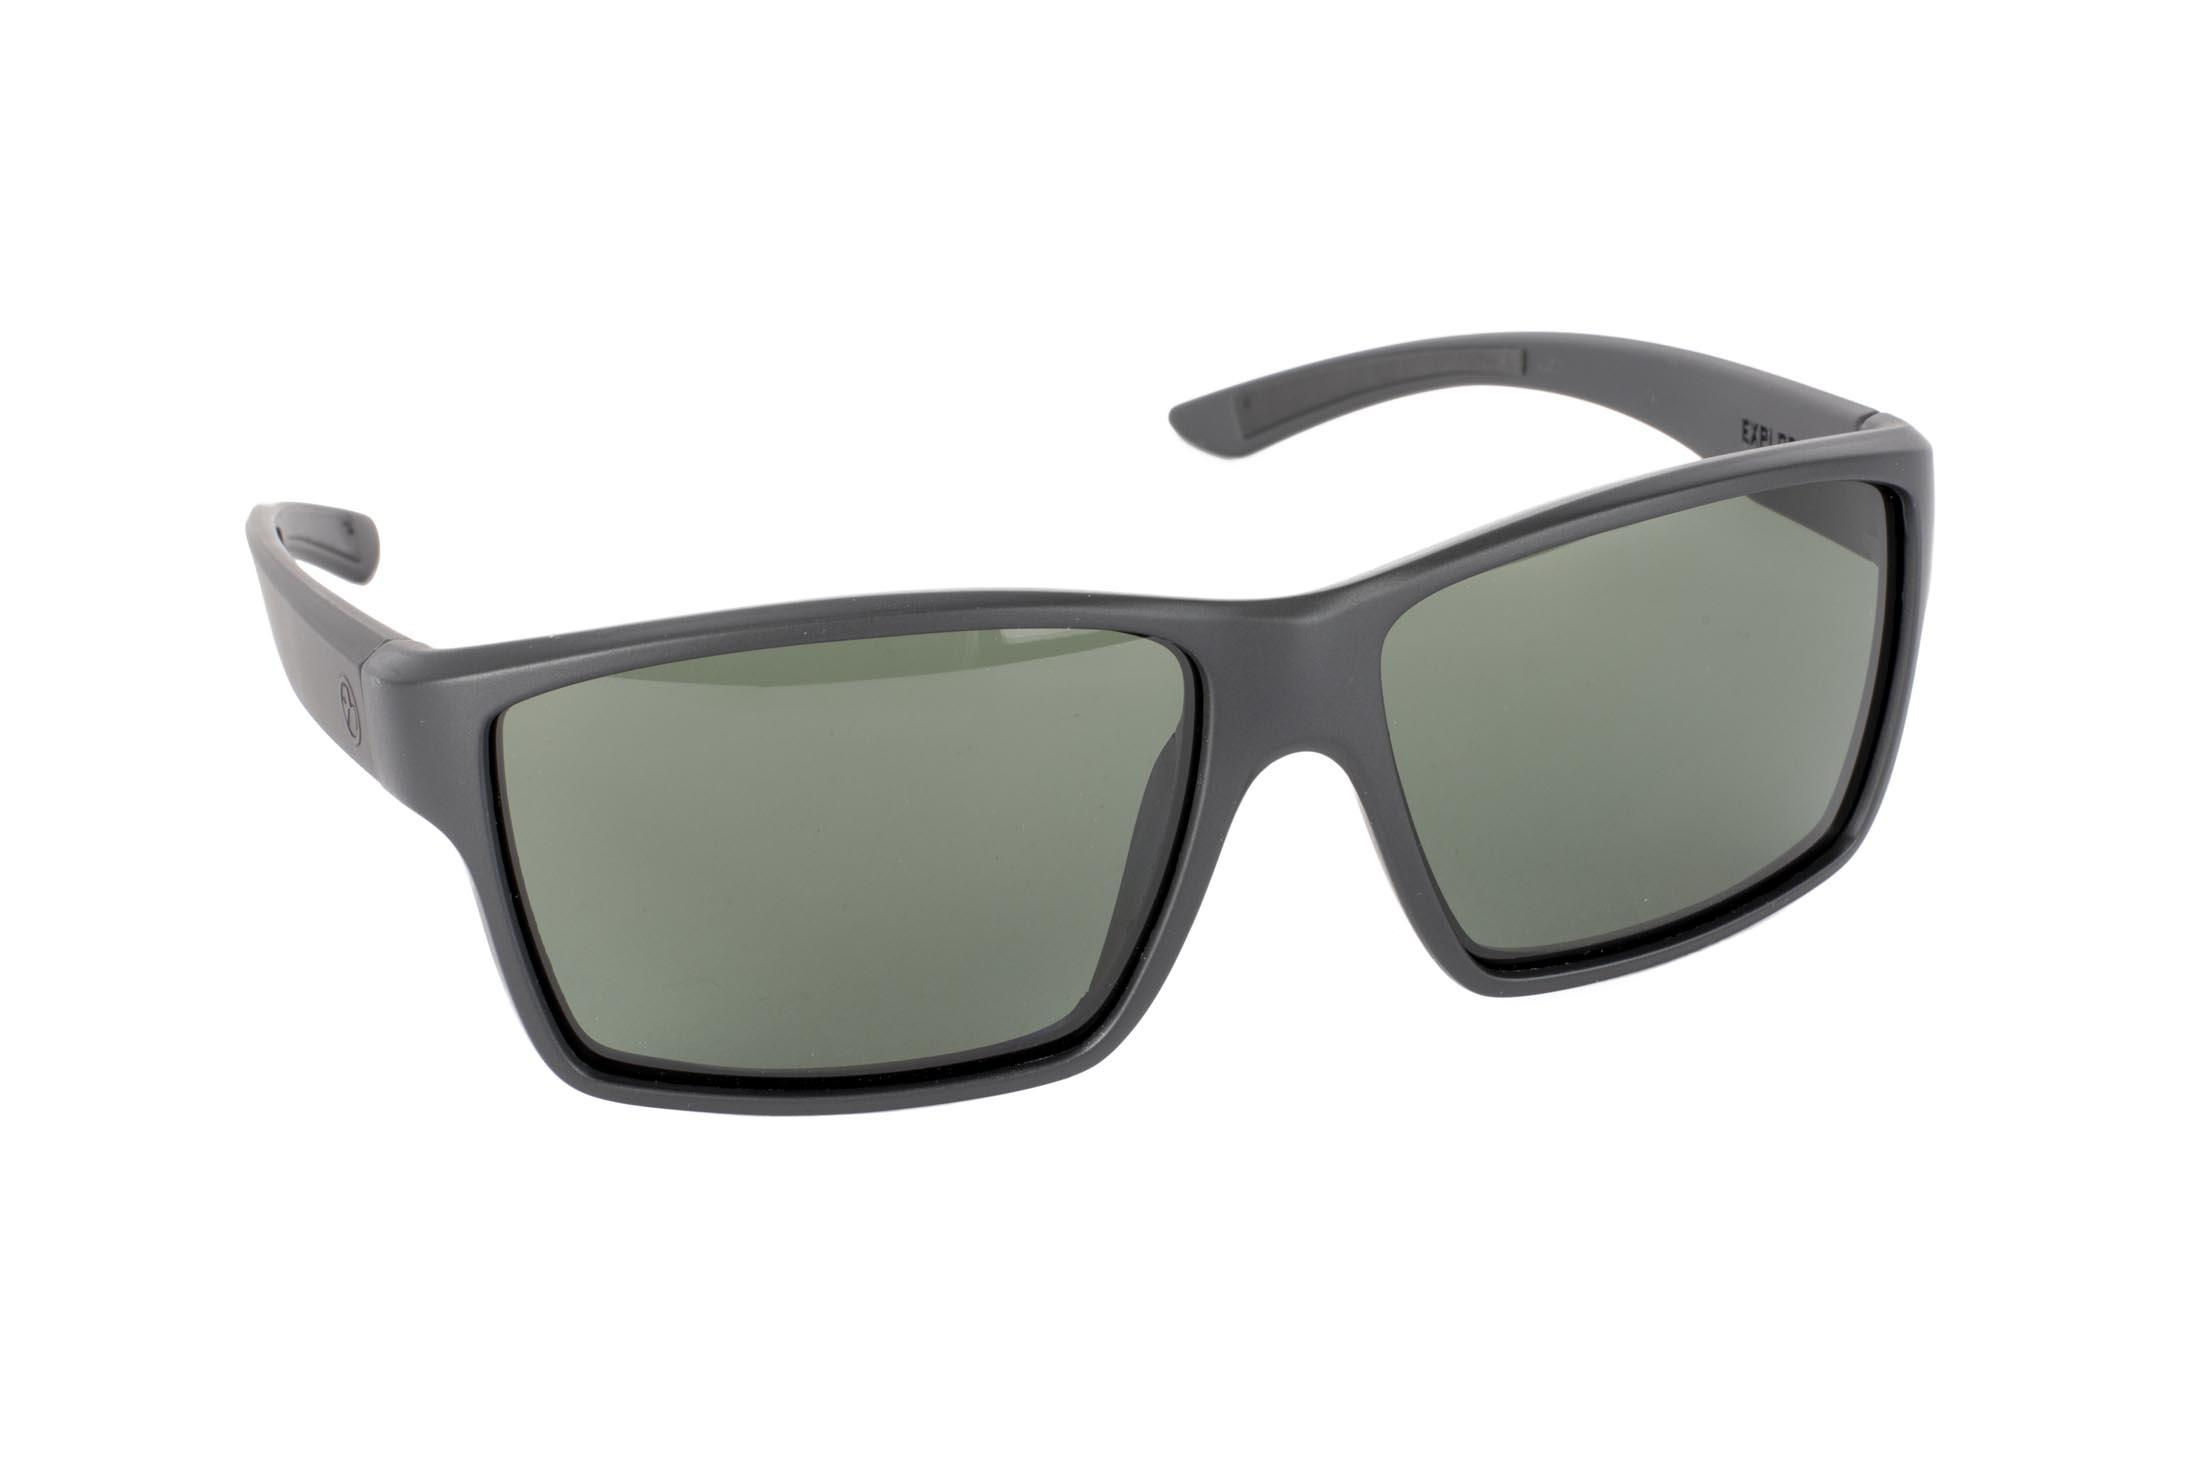 3c6e4f0a08 ... Magpul Explorer ballistic sunglasses with tortoise frame and polarized  bronze blue lenses are ideal for ...